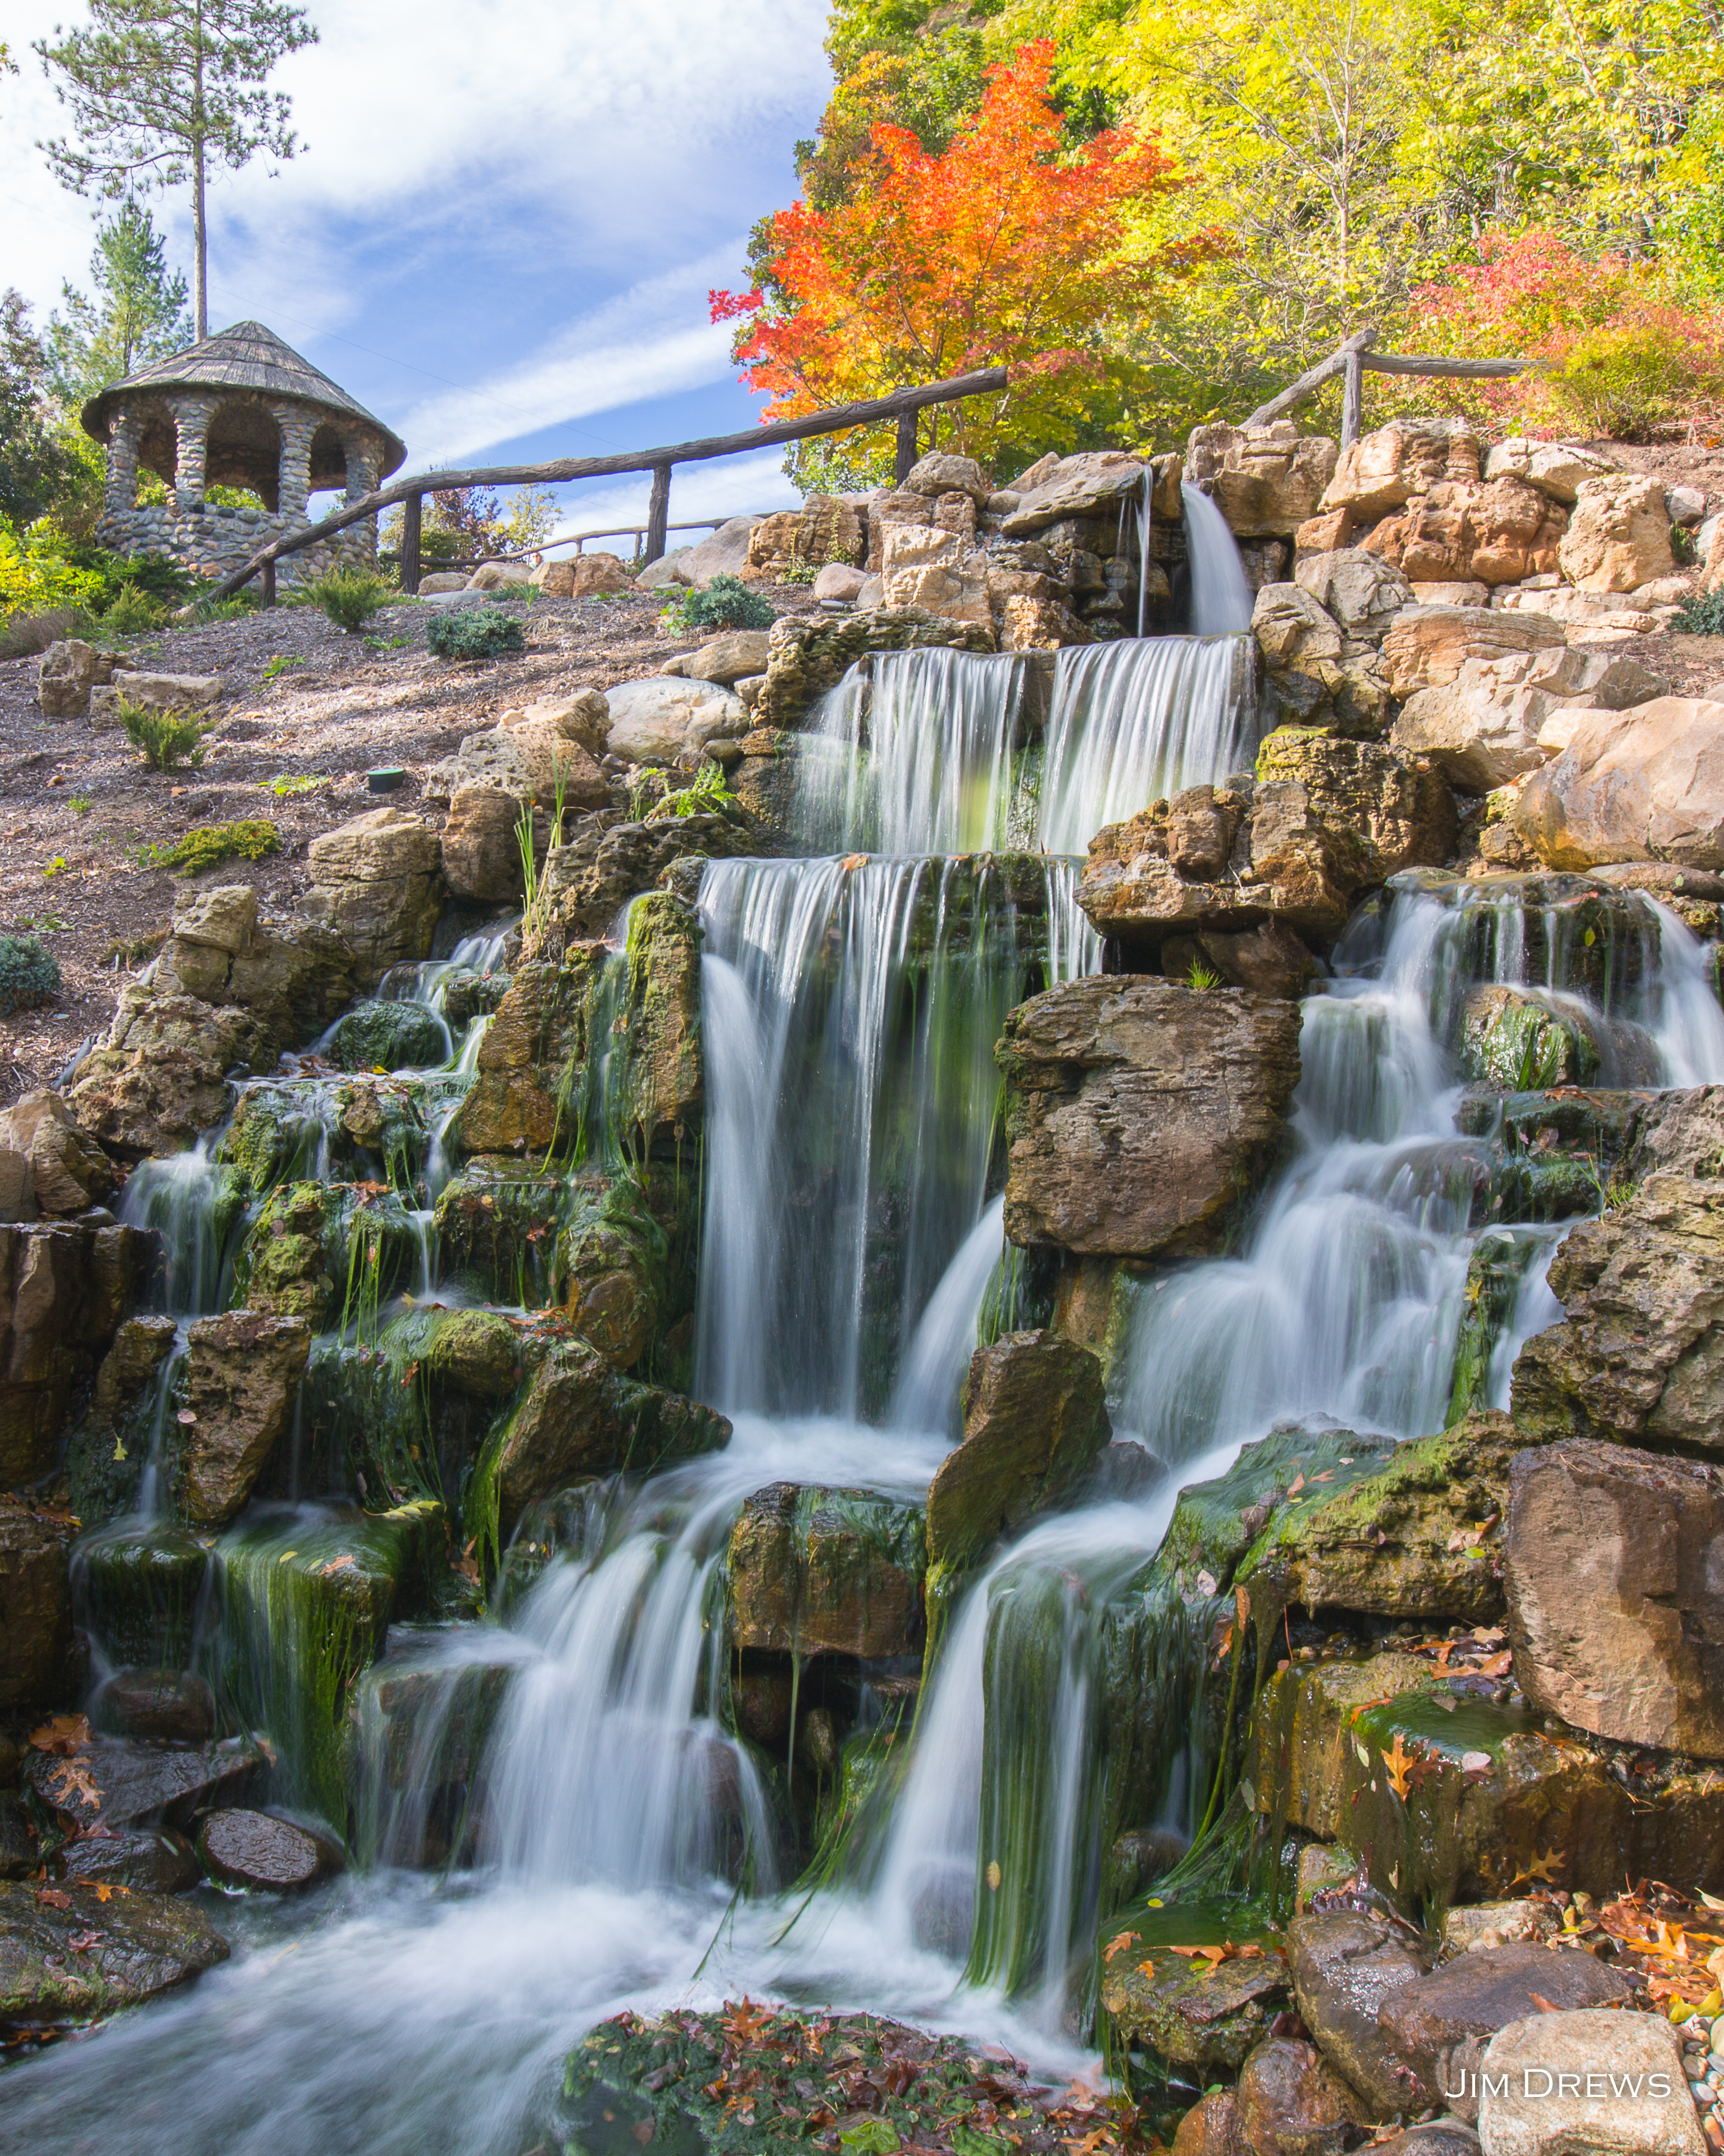 Hillsdale College Waterfall JPG Oct 12 2014 by Jim Drews for ZENFOLIO 0B4A4177